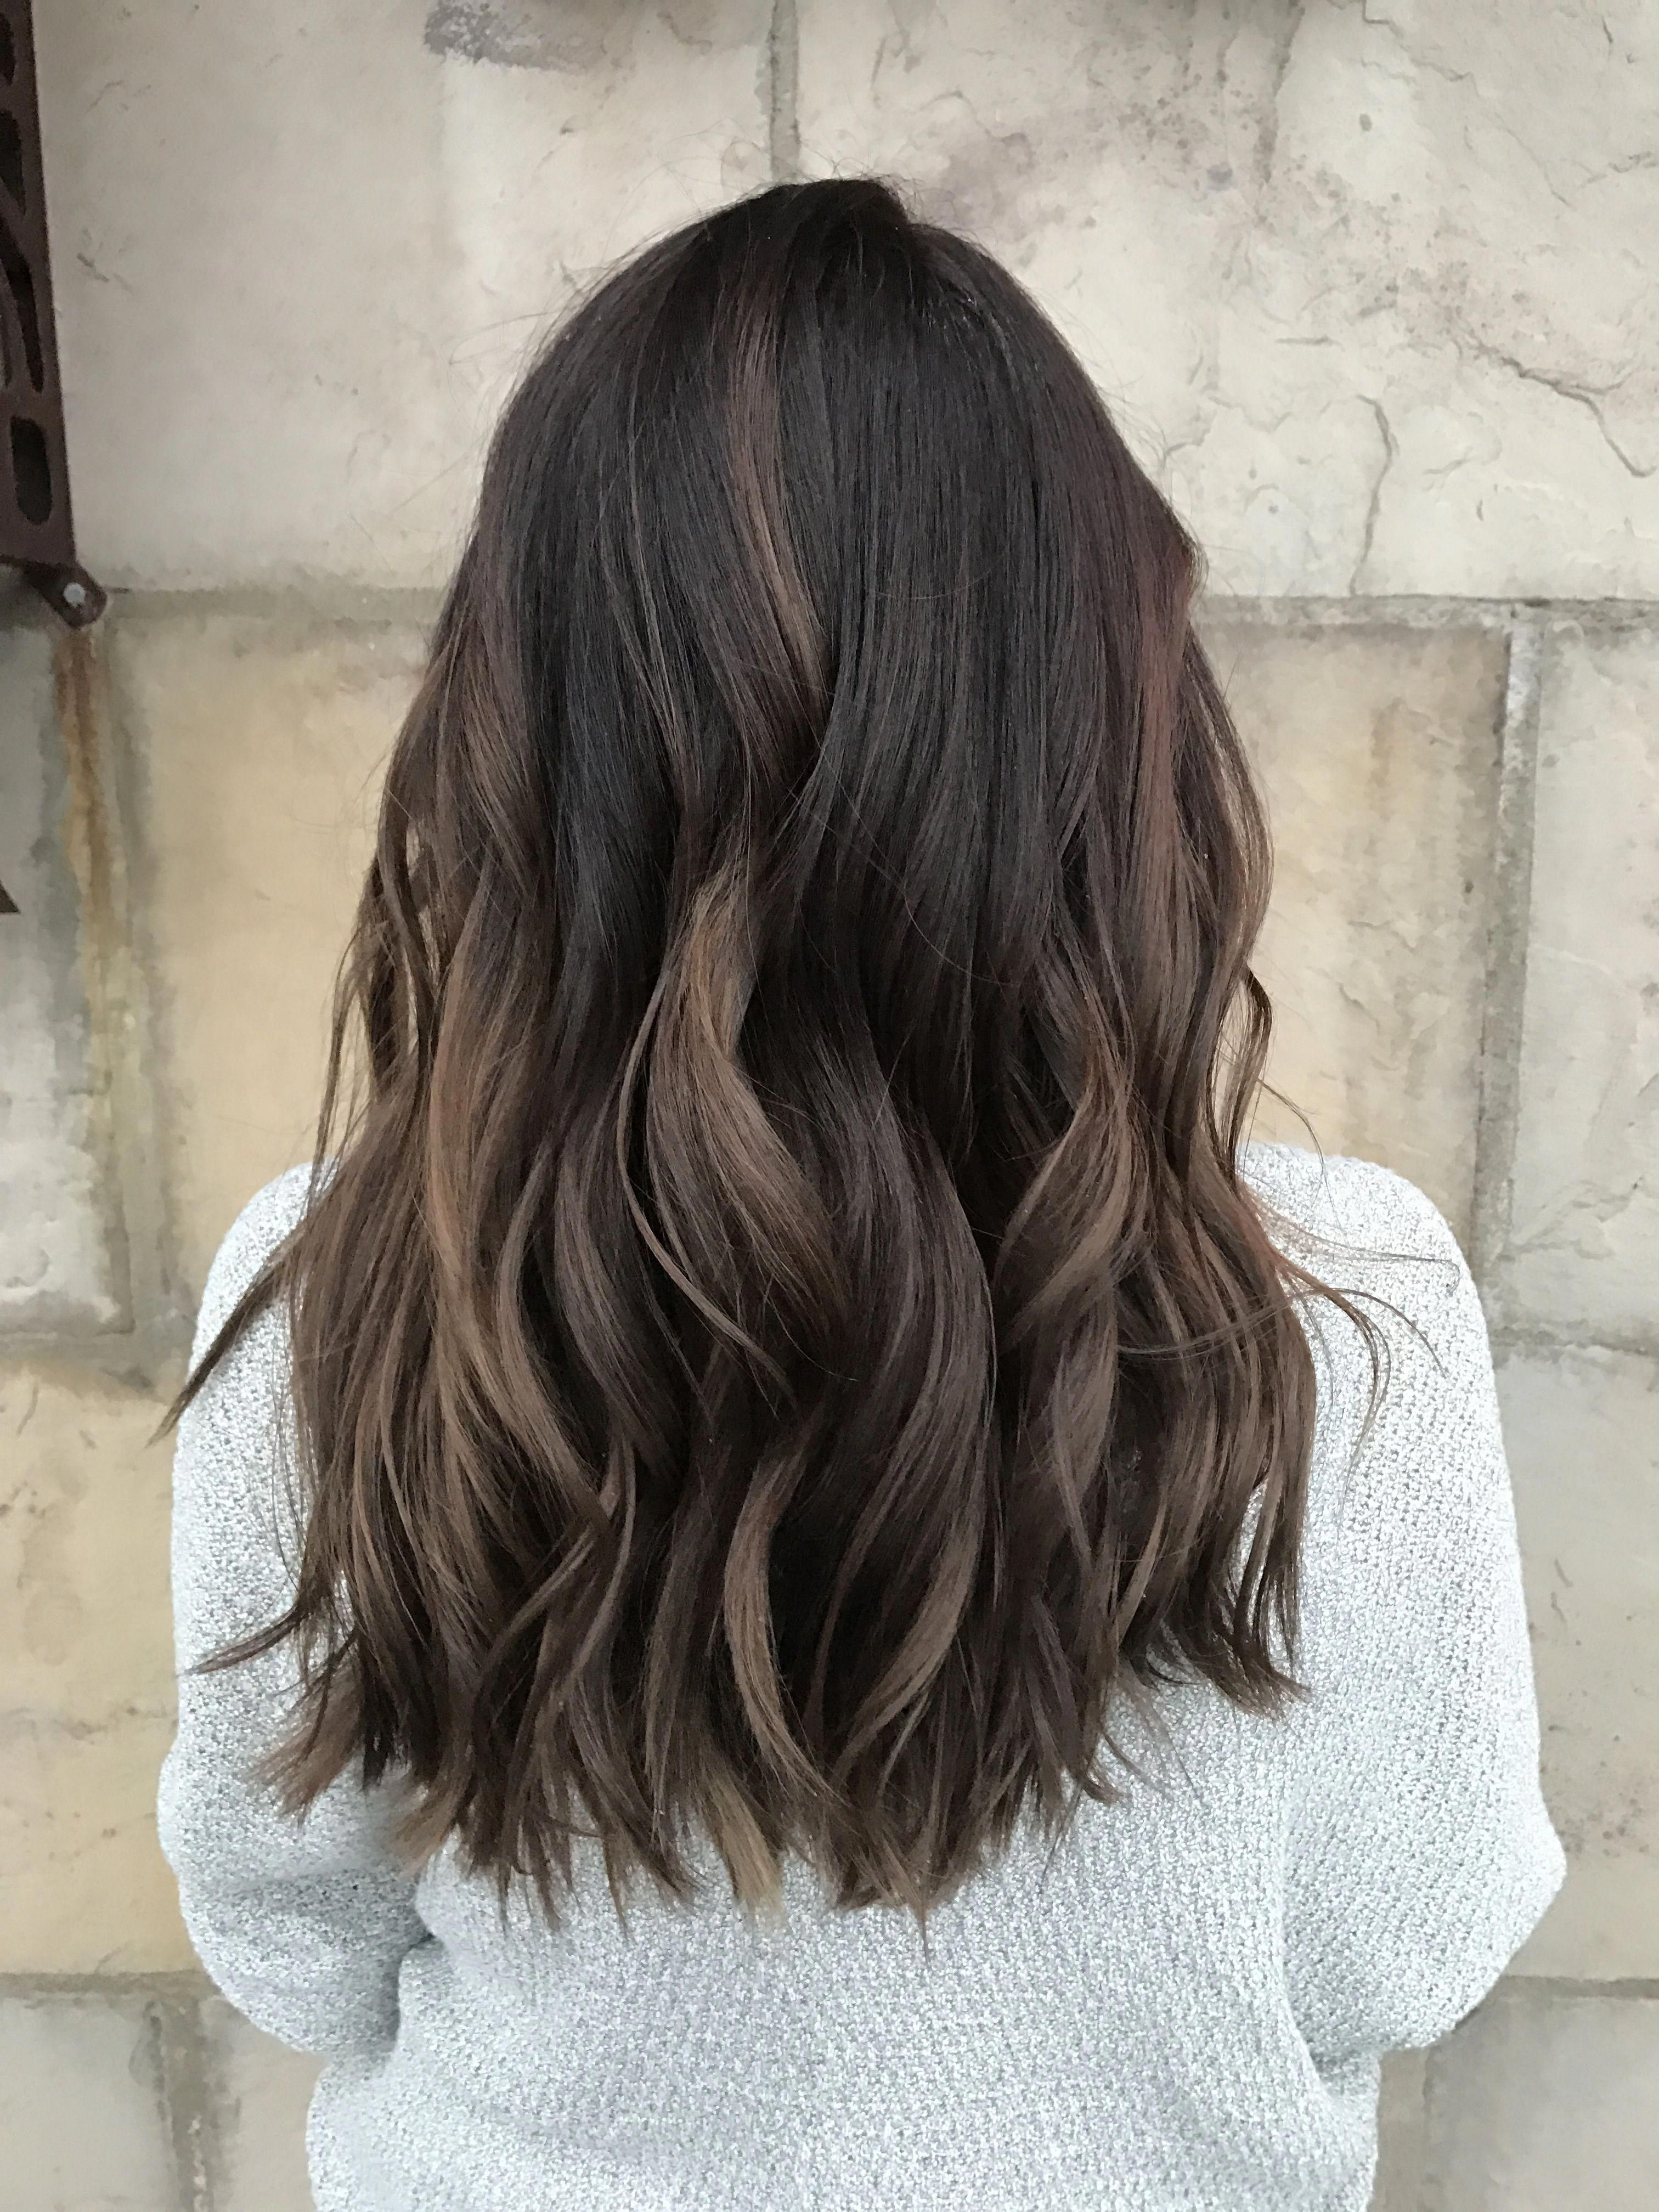 Dimensional Brunette Baby Highlights Balayage Ombre Dark Brown To Light Brown Chocolate Brown Blu Balayage Brunette Dimensional Brunette Light Brown Hair